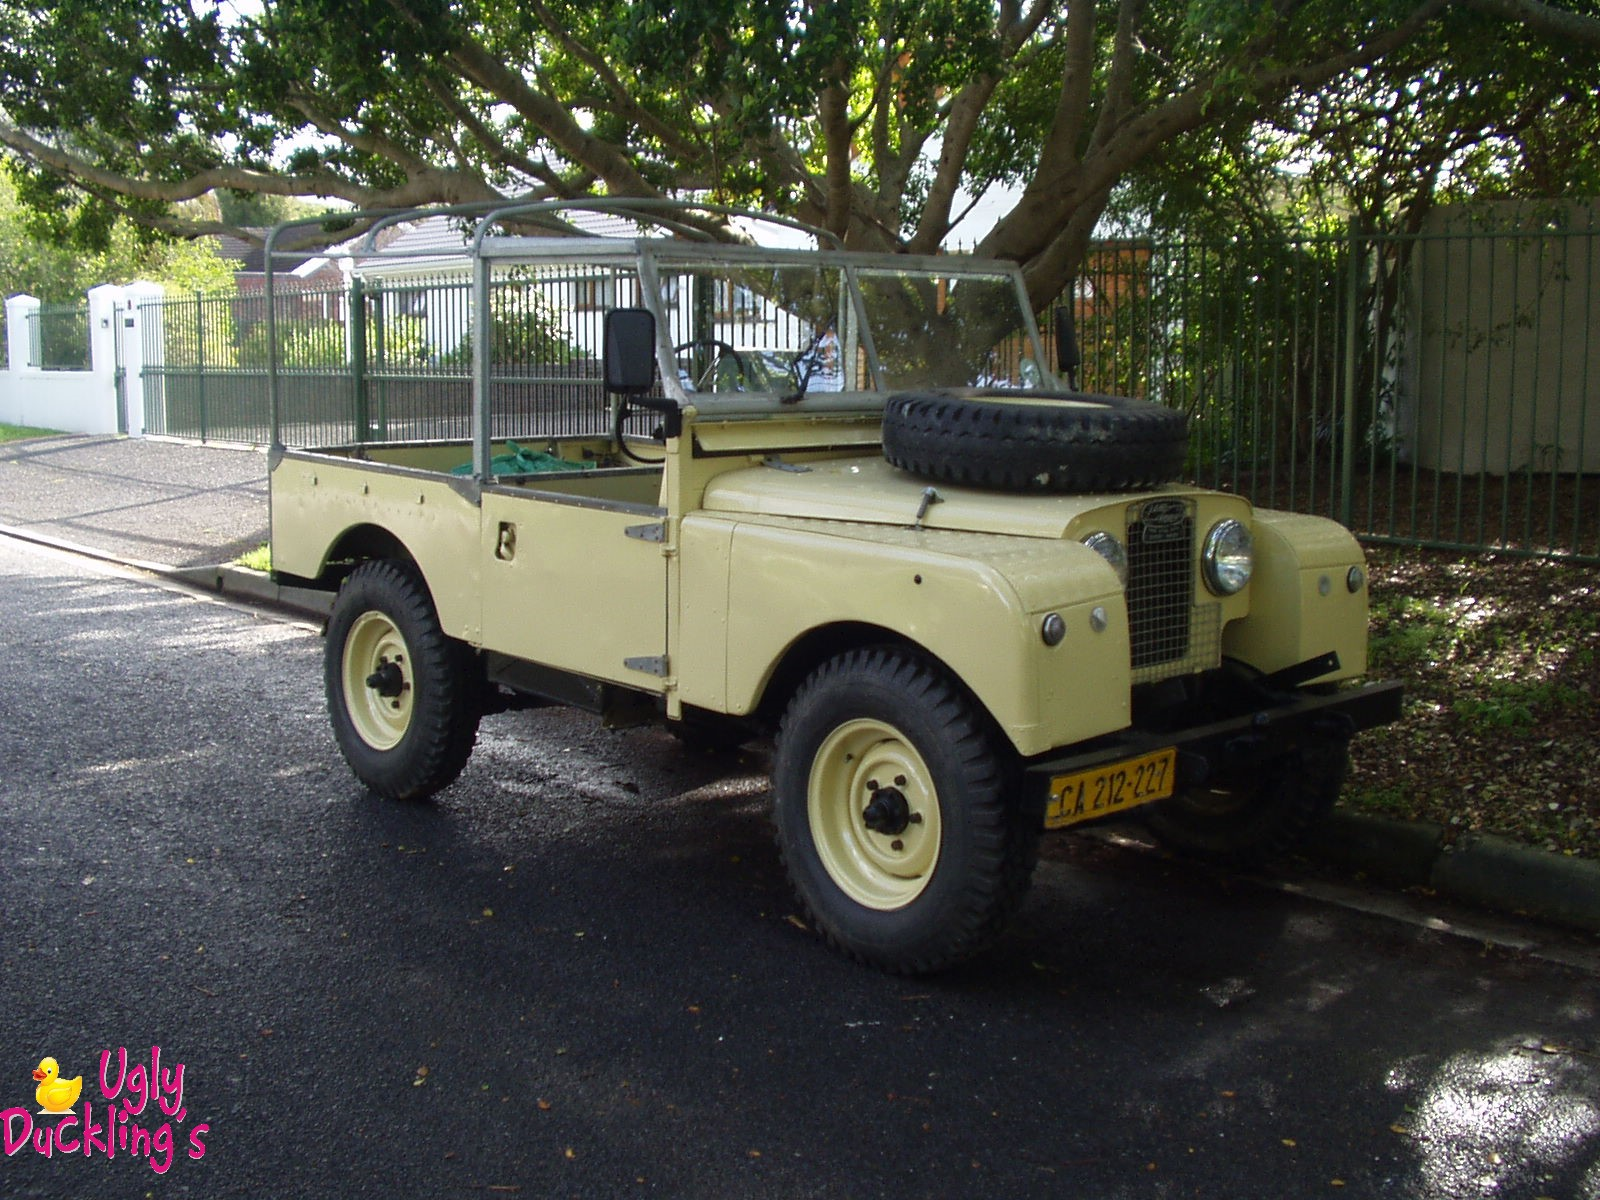 1967 Land Rover Series 1